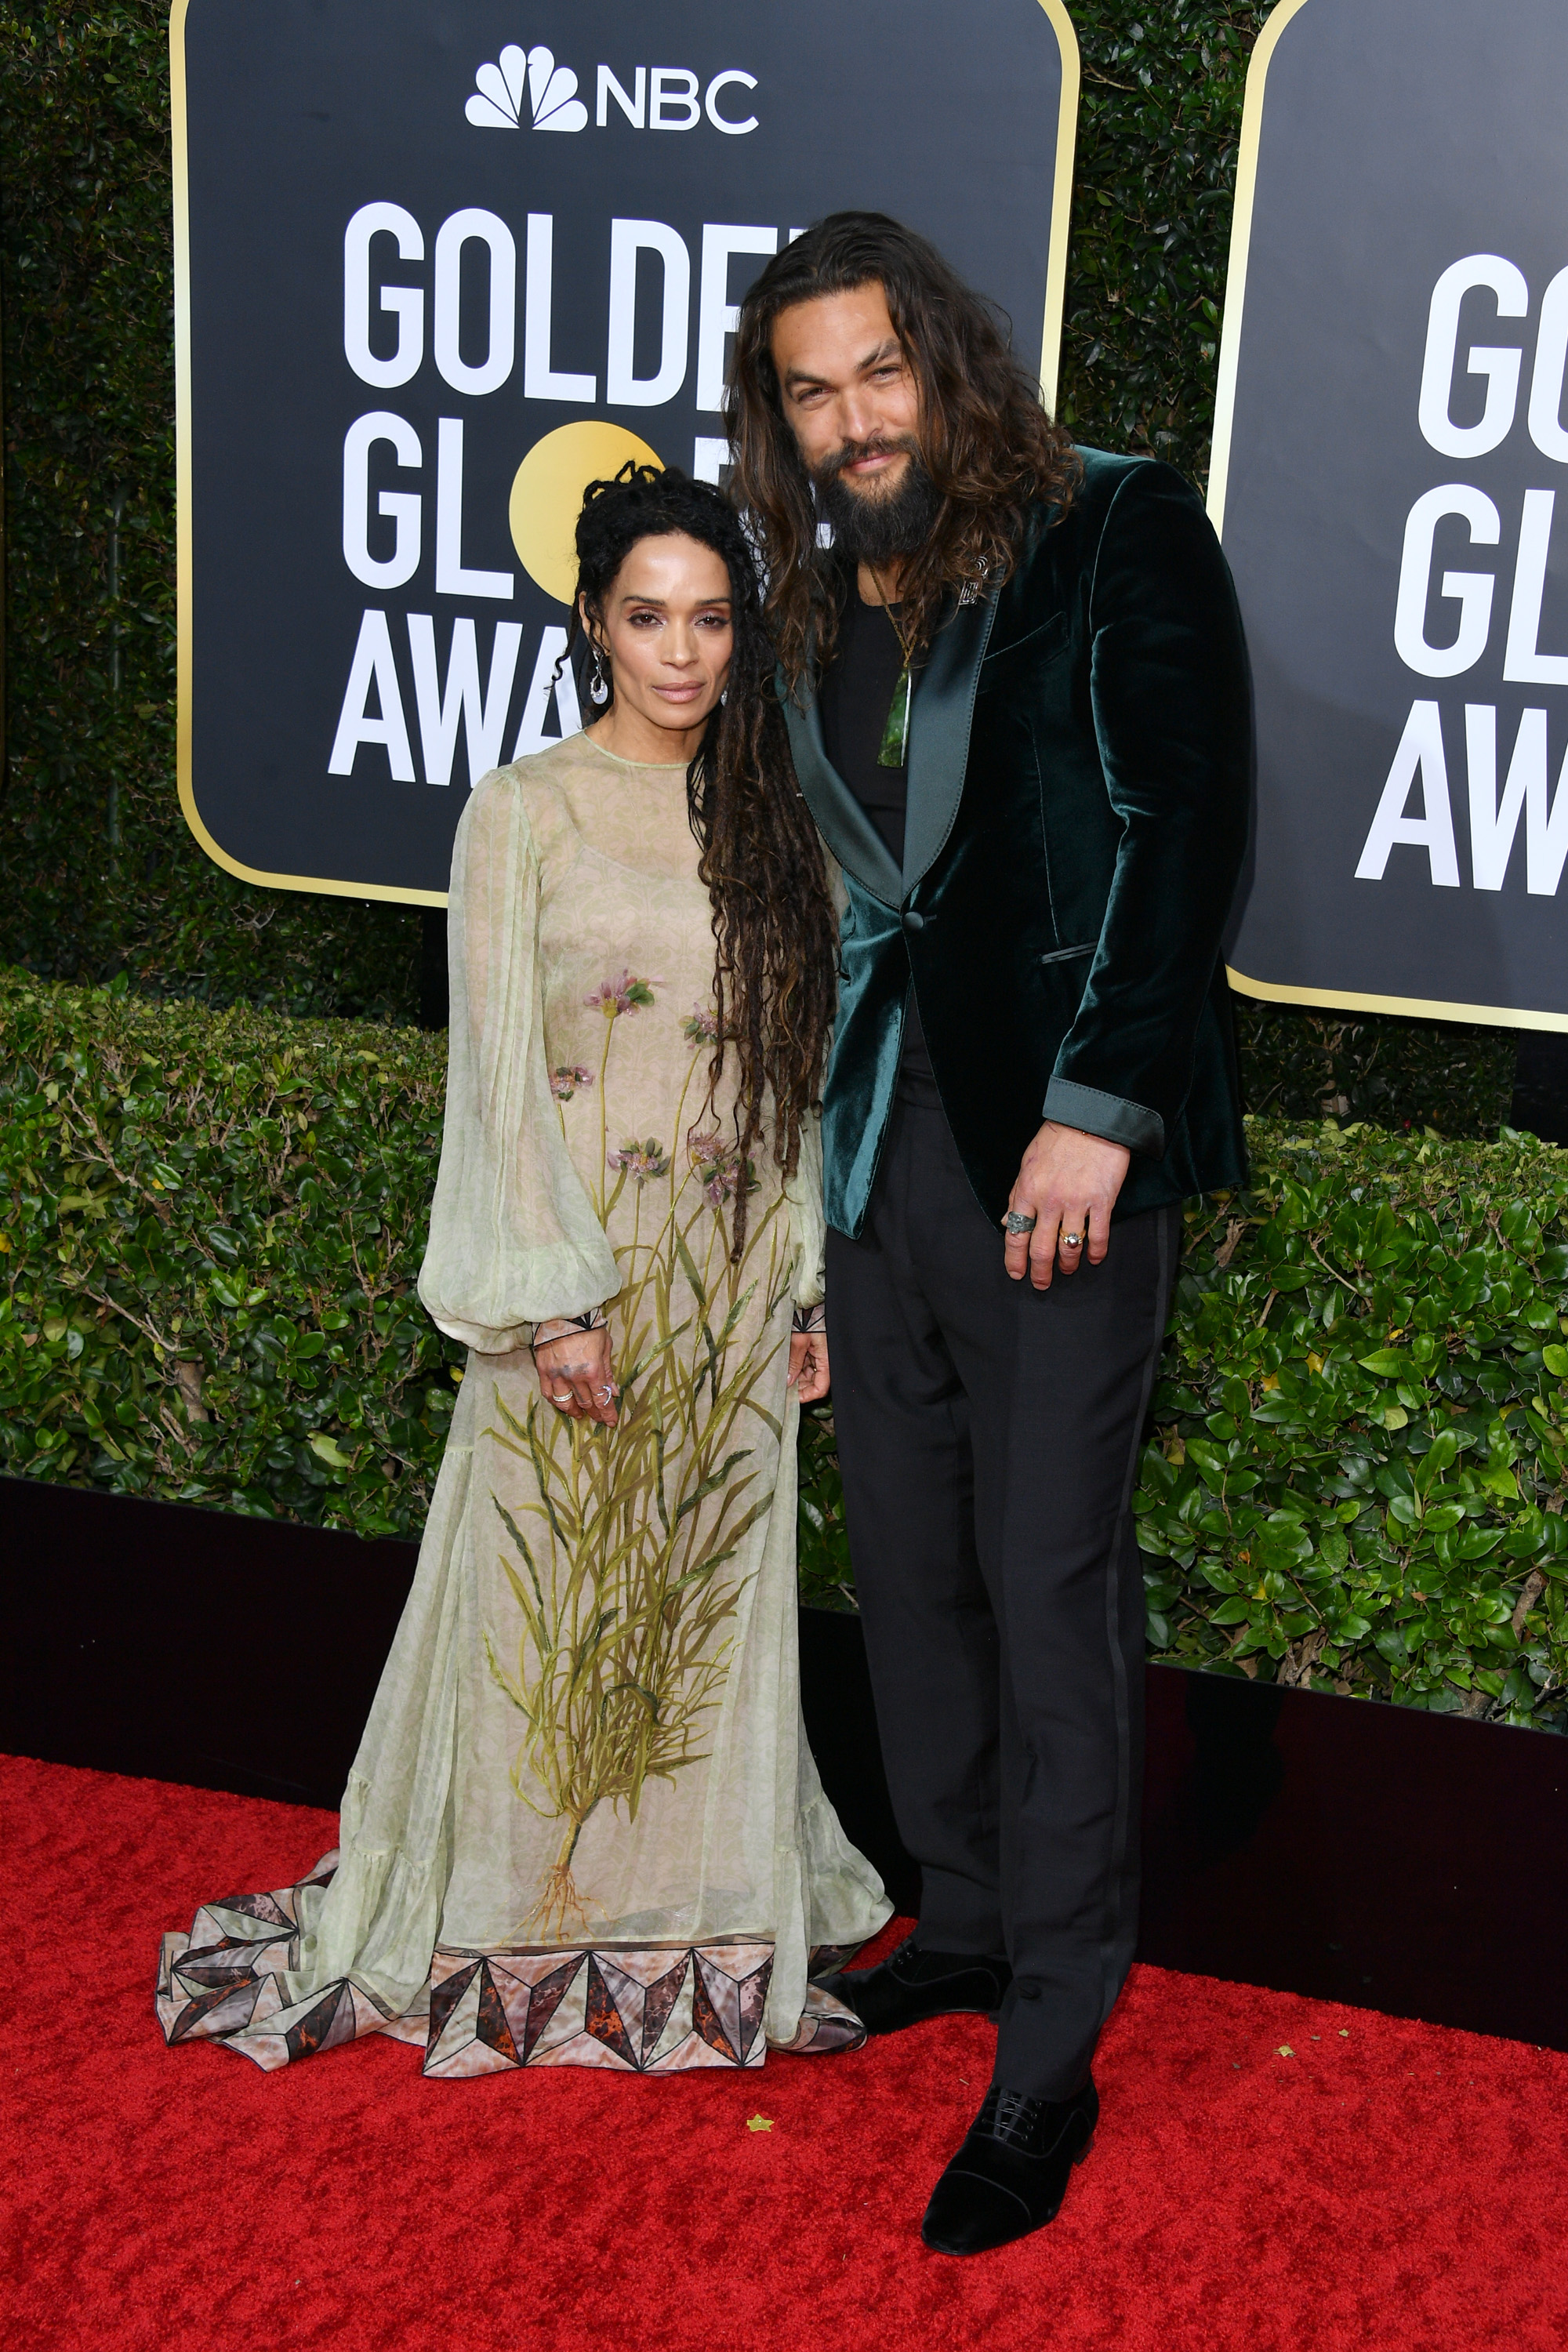 BEVERLY HILLS, CALIFORNIA - JANUARY 05: (L-R) Lisa Bonet and Jason Momoa attend the 77th Annual Golden Globe Awards at The Beverly Hilton Hotel on January 05, 2020 in Beverly Hills, California. (Photo by George Pimentel/WireImage)